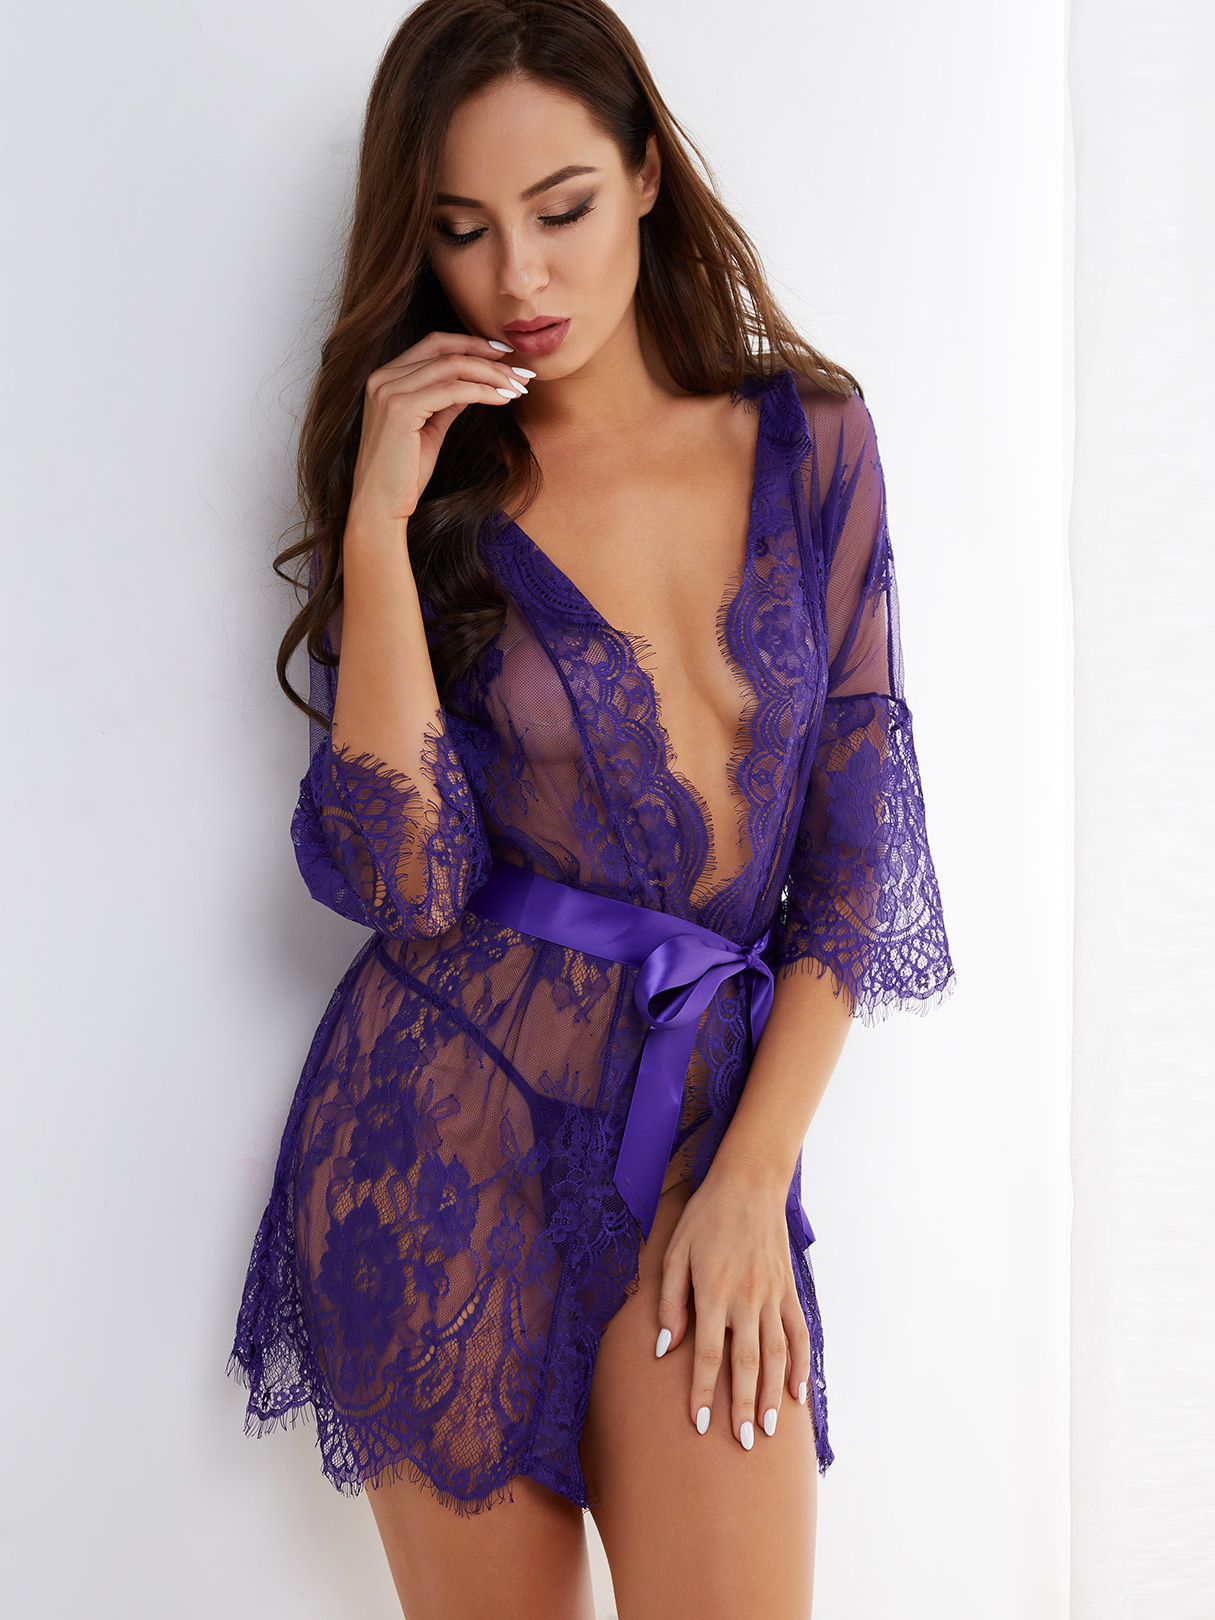 Purple Tease V-neck Floral Lace Robe with Thong